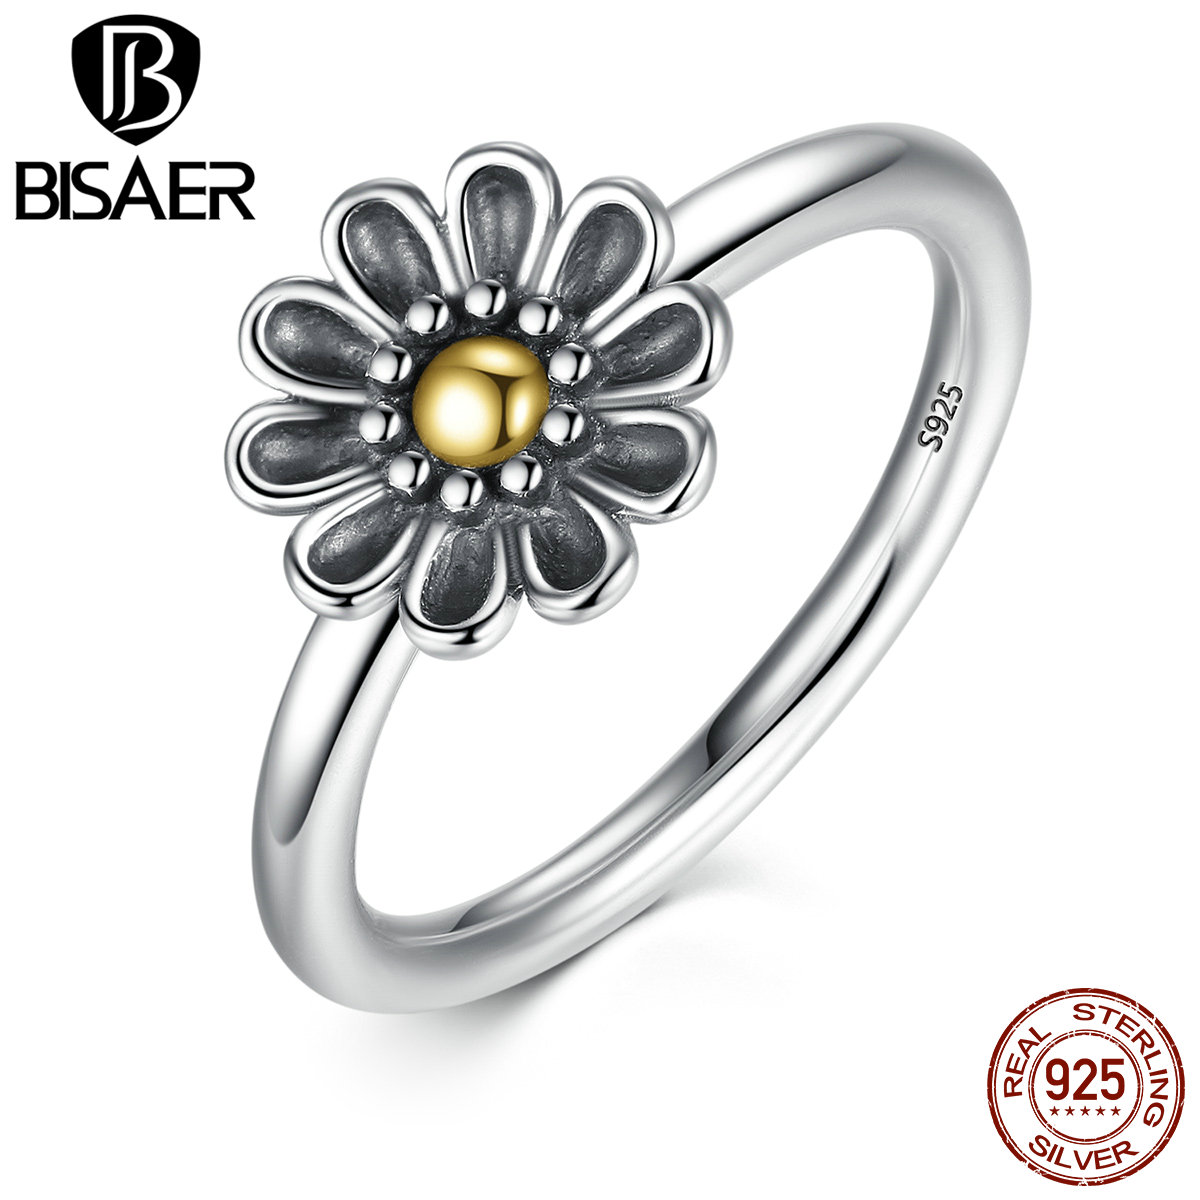 Genuine 925 sterling silver stackable ring dazzling daisy flower genuine 925 sterling silver stackable ring dazzling daisy flower rings for women sterling silver engagement jewelry s925 gift in rings from jewelry izmirmasajfo Image collections